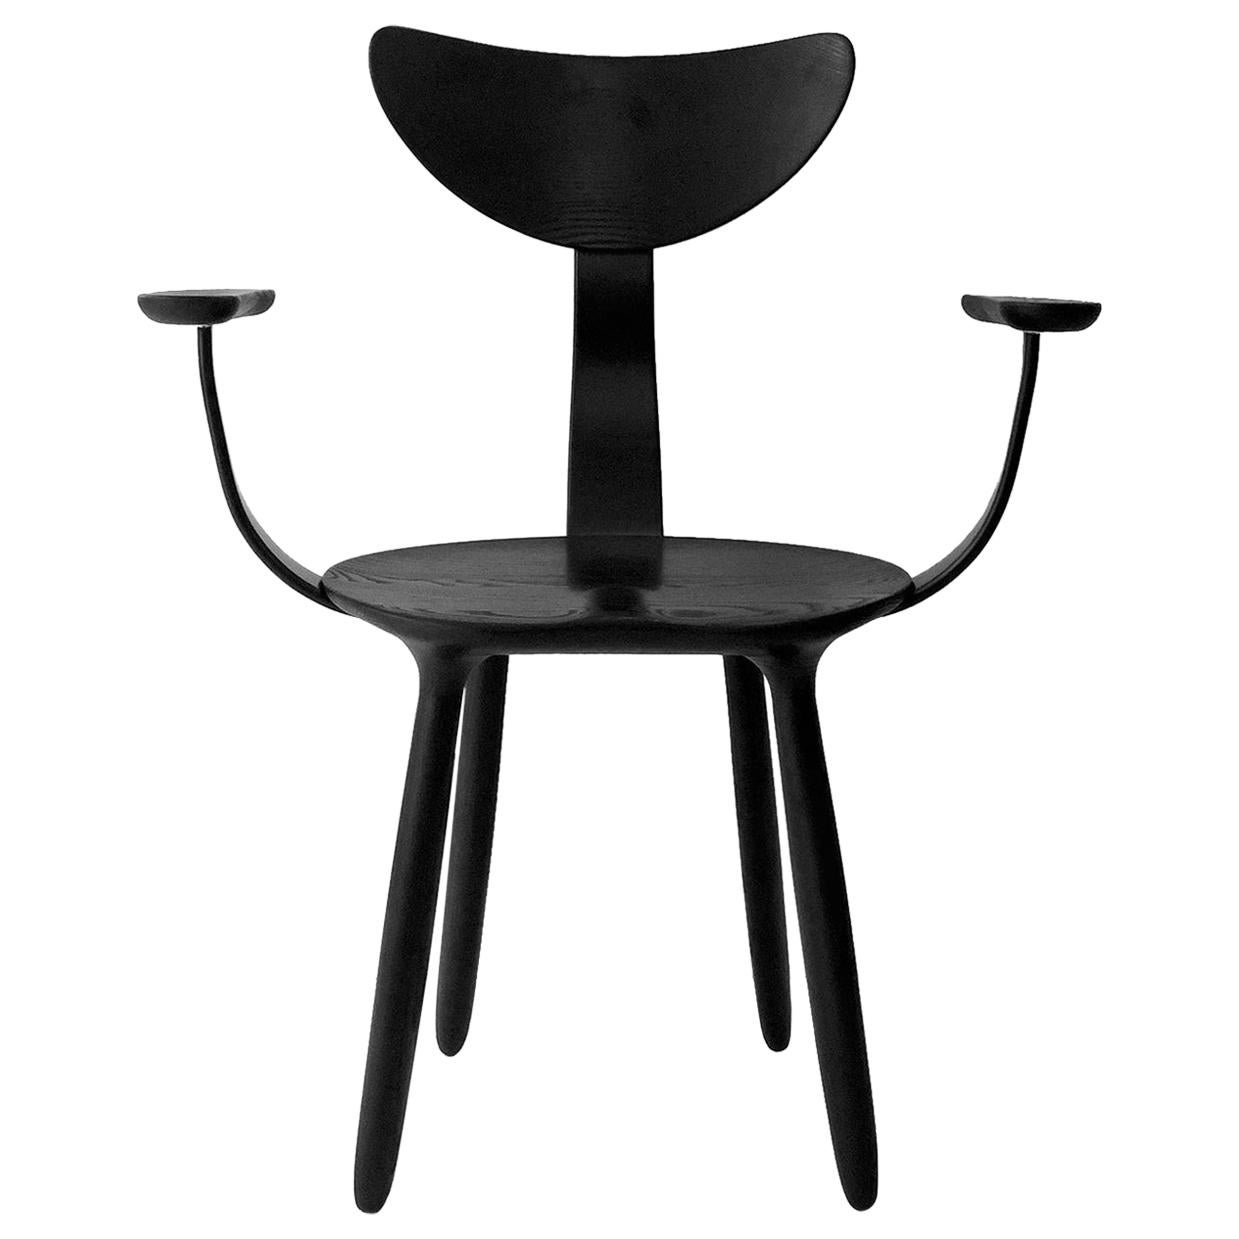 Black Stained Ash Daiku Armchair by Victoria Magniant, Galerie V